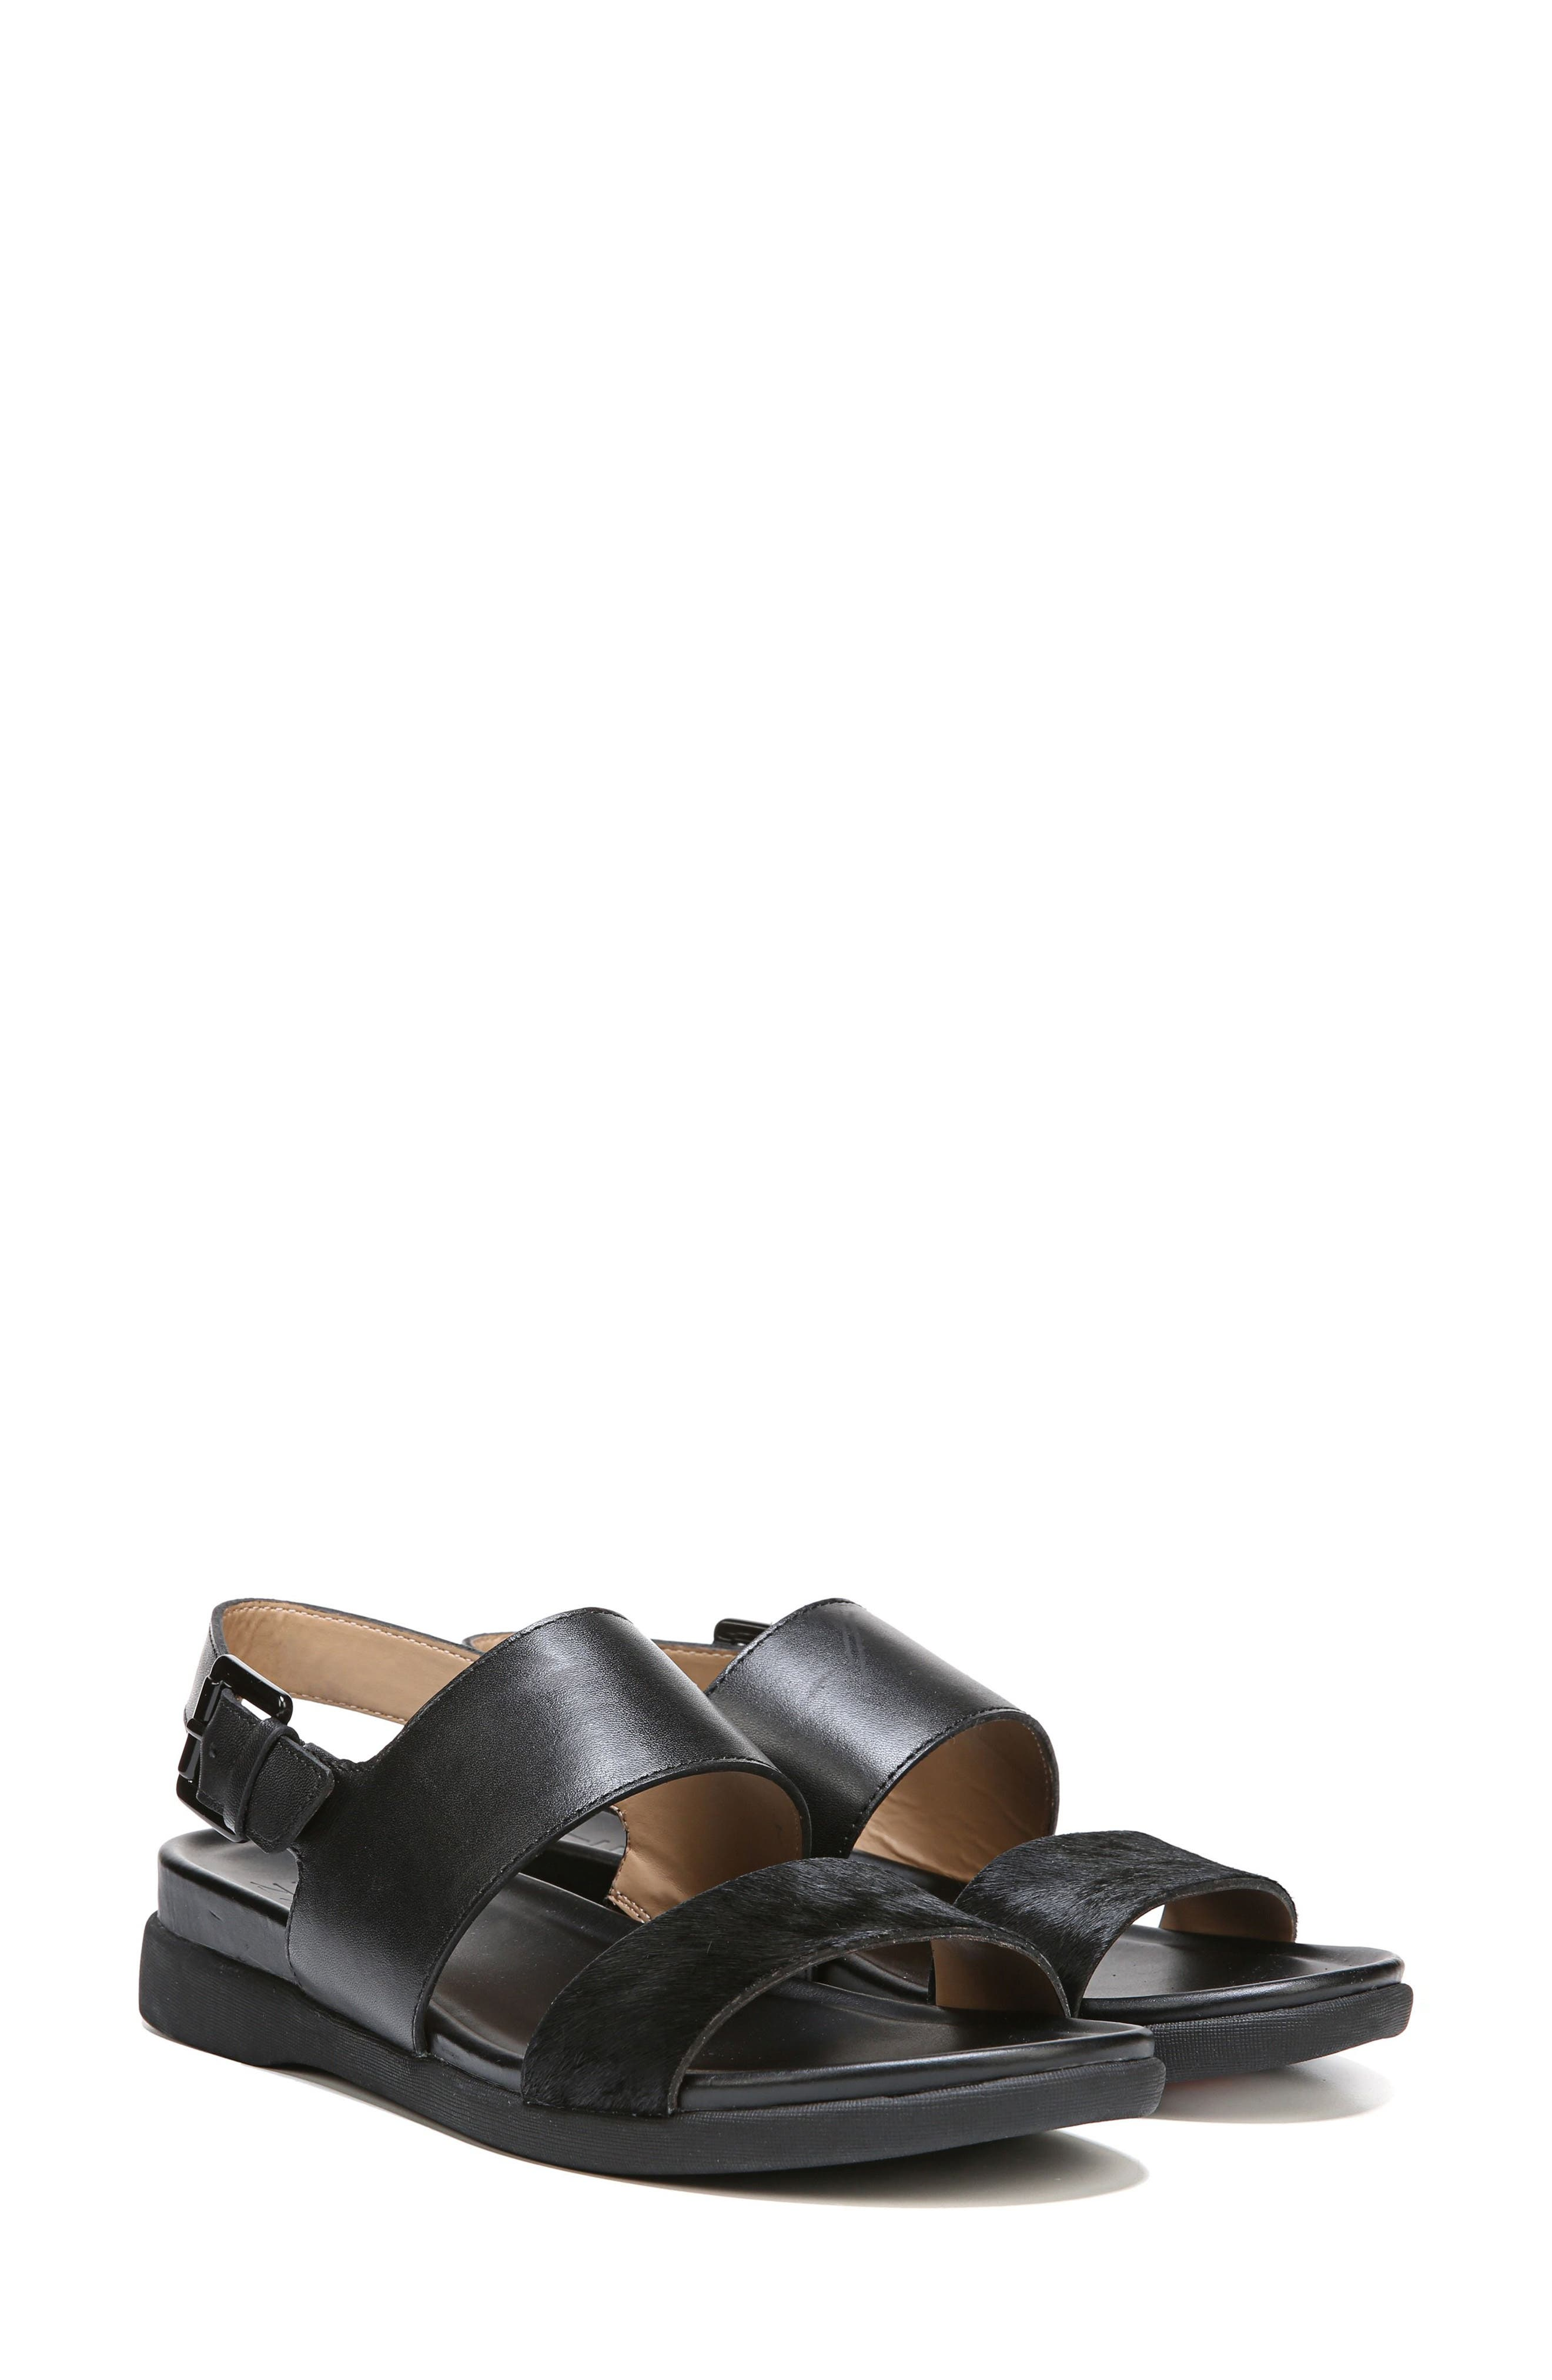 Emory Wedge Sandal,                             Main thumbnail 1, color,                             BLACK LEATHER